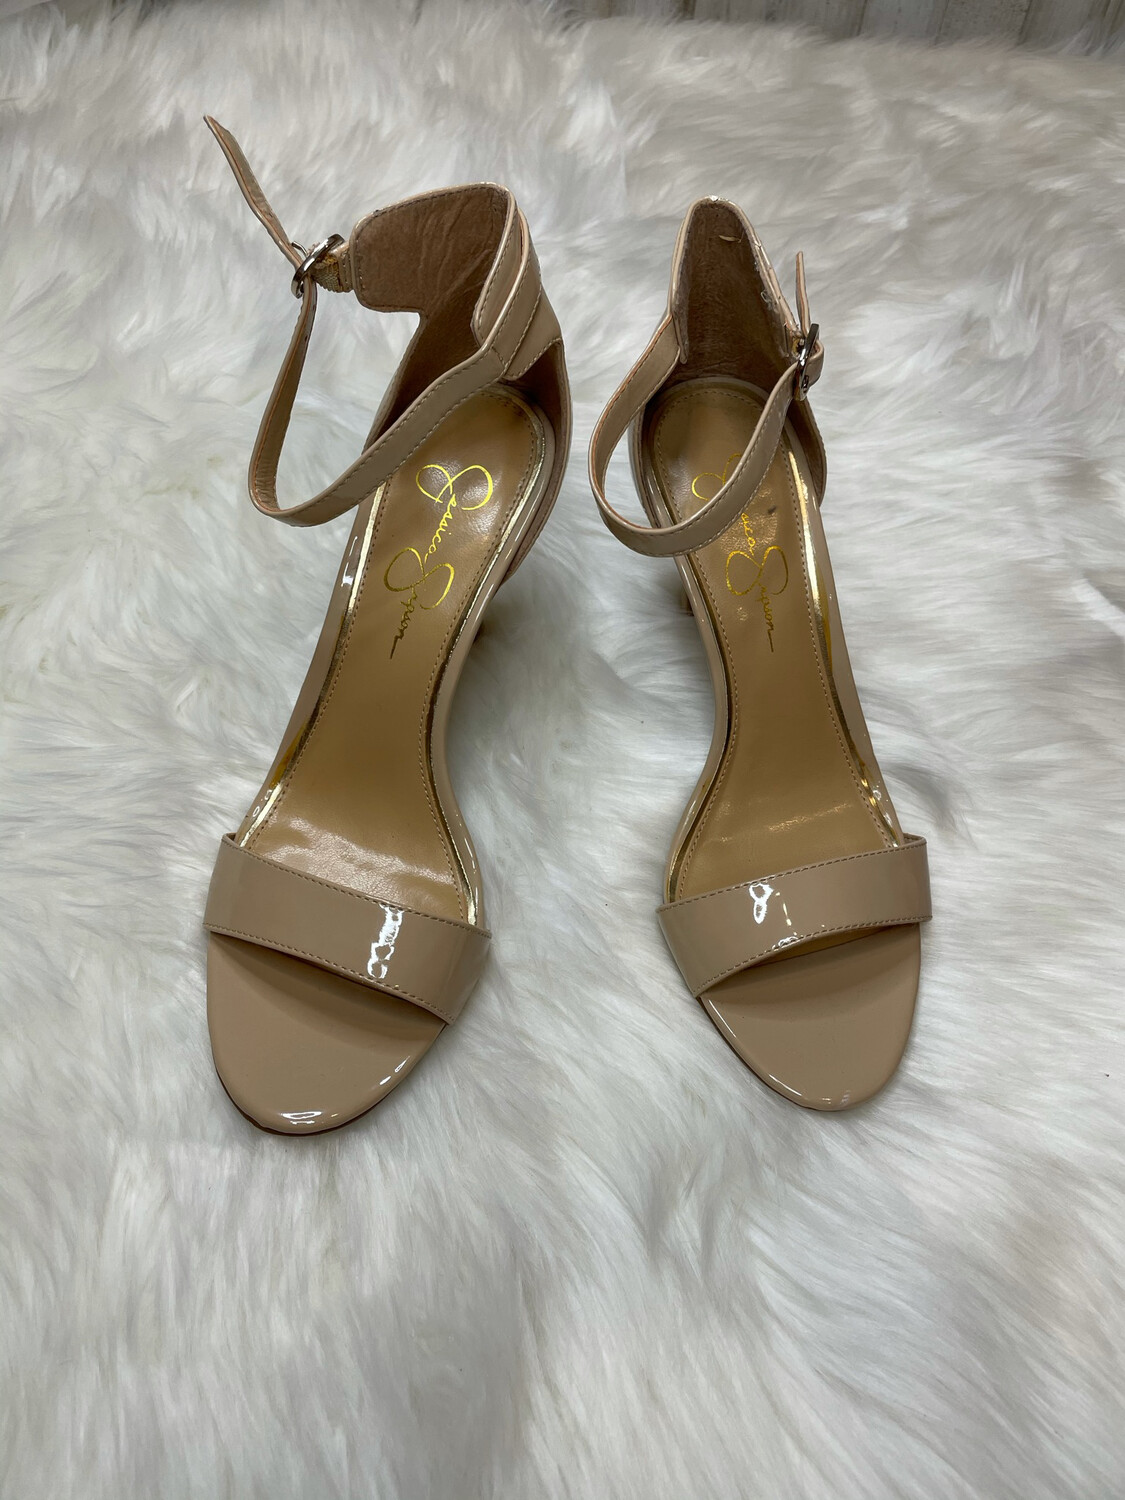 Jessica Simpson Nude Strappy Sandals - Size 9